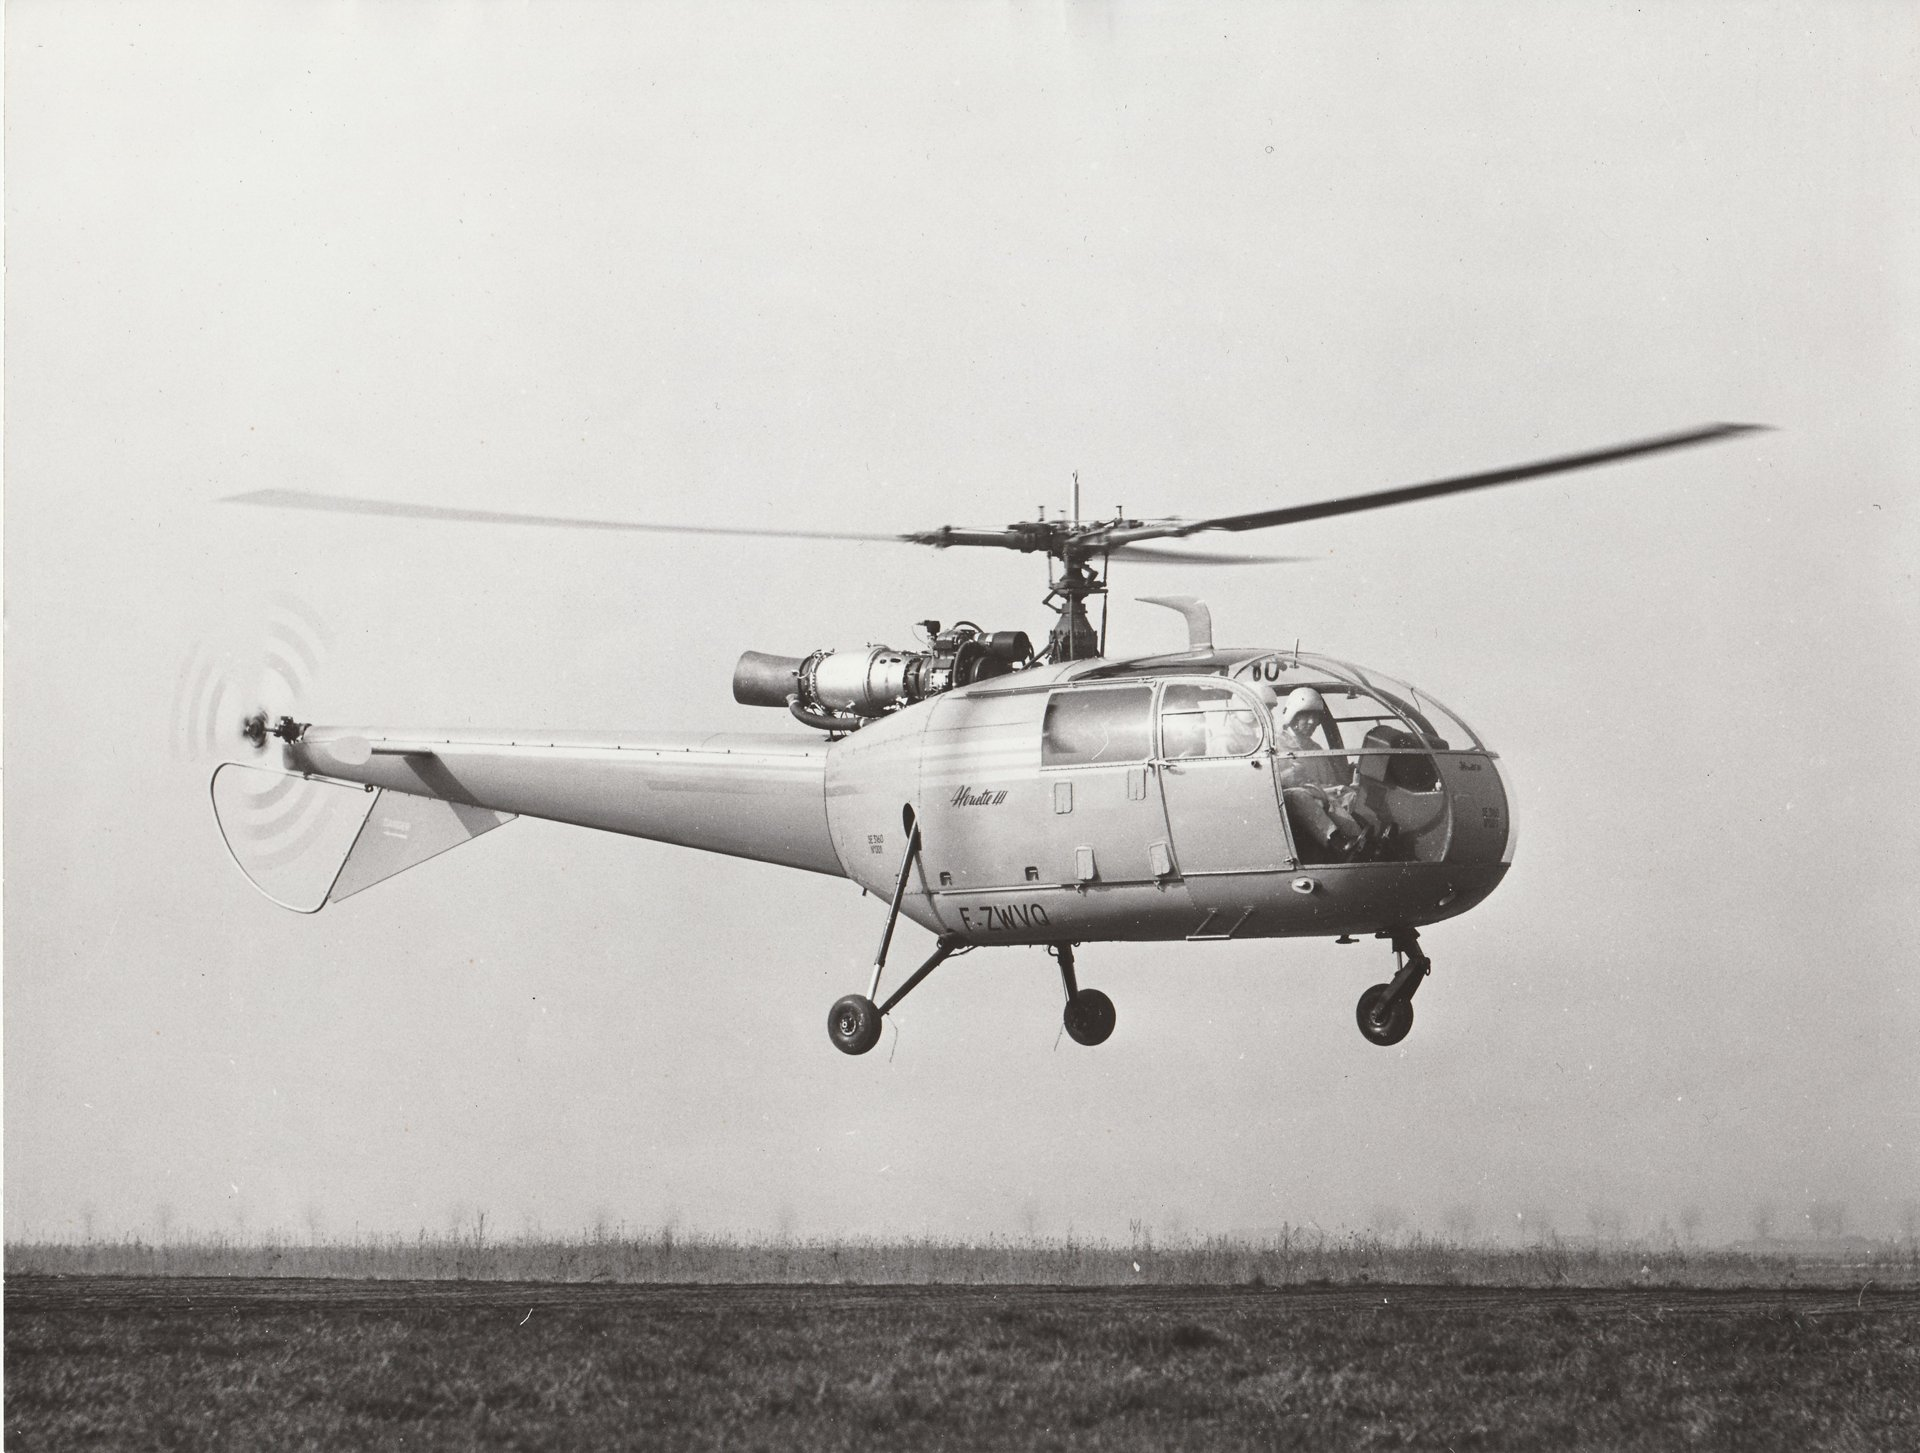 The Alouette III SA3160, flown by Jean Boulet and Robert Malus, completed its maiden flight in Bourget on 28 February 1959.